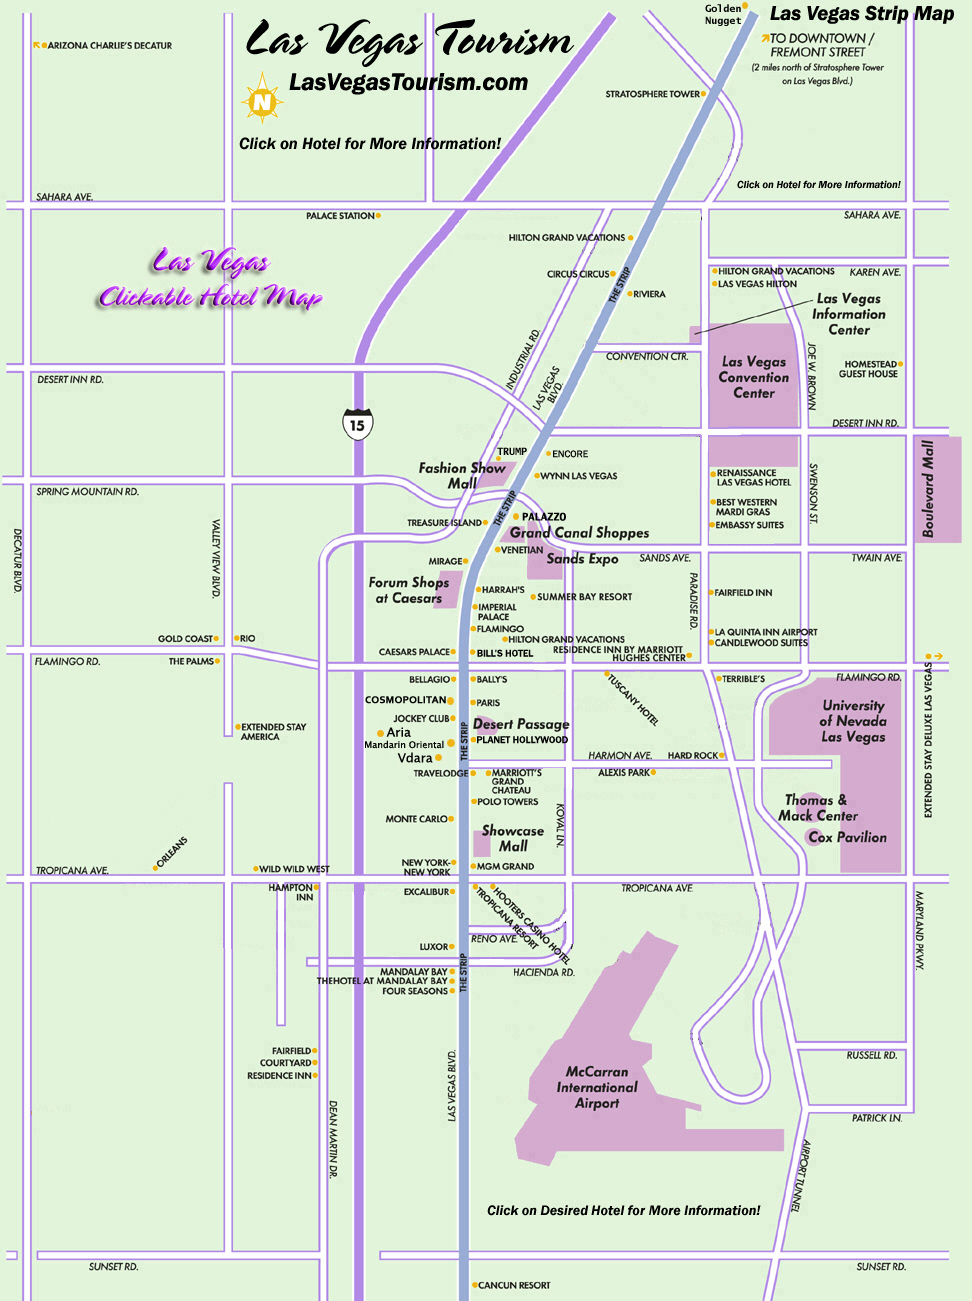 Las Vegas Map, Official Site - Las Vegas Strip Map - Printable Map Of Las Vegas Strip 2018